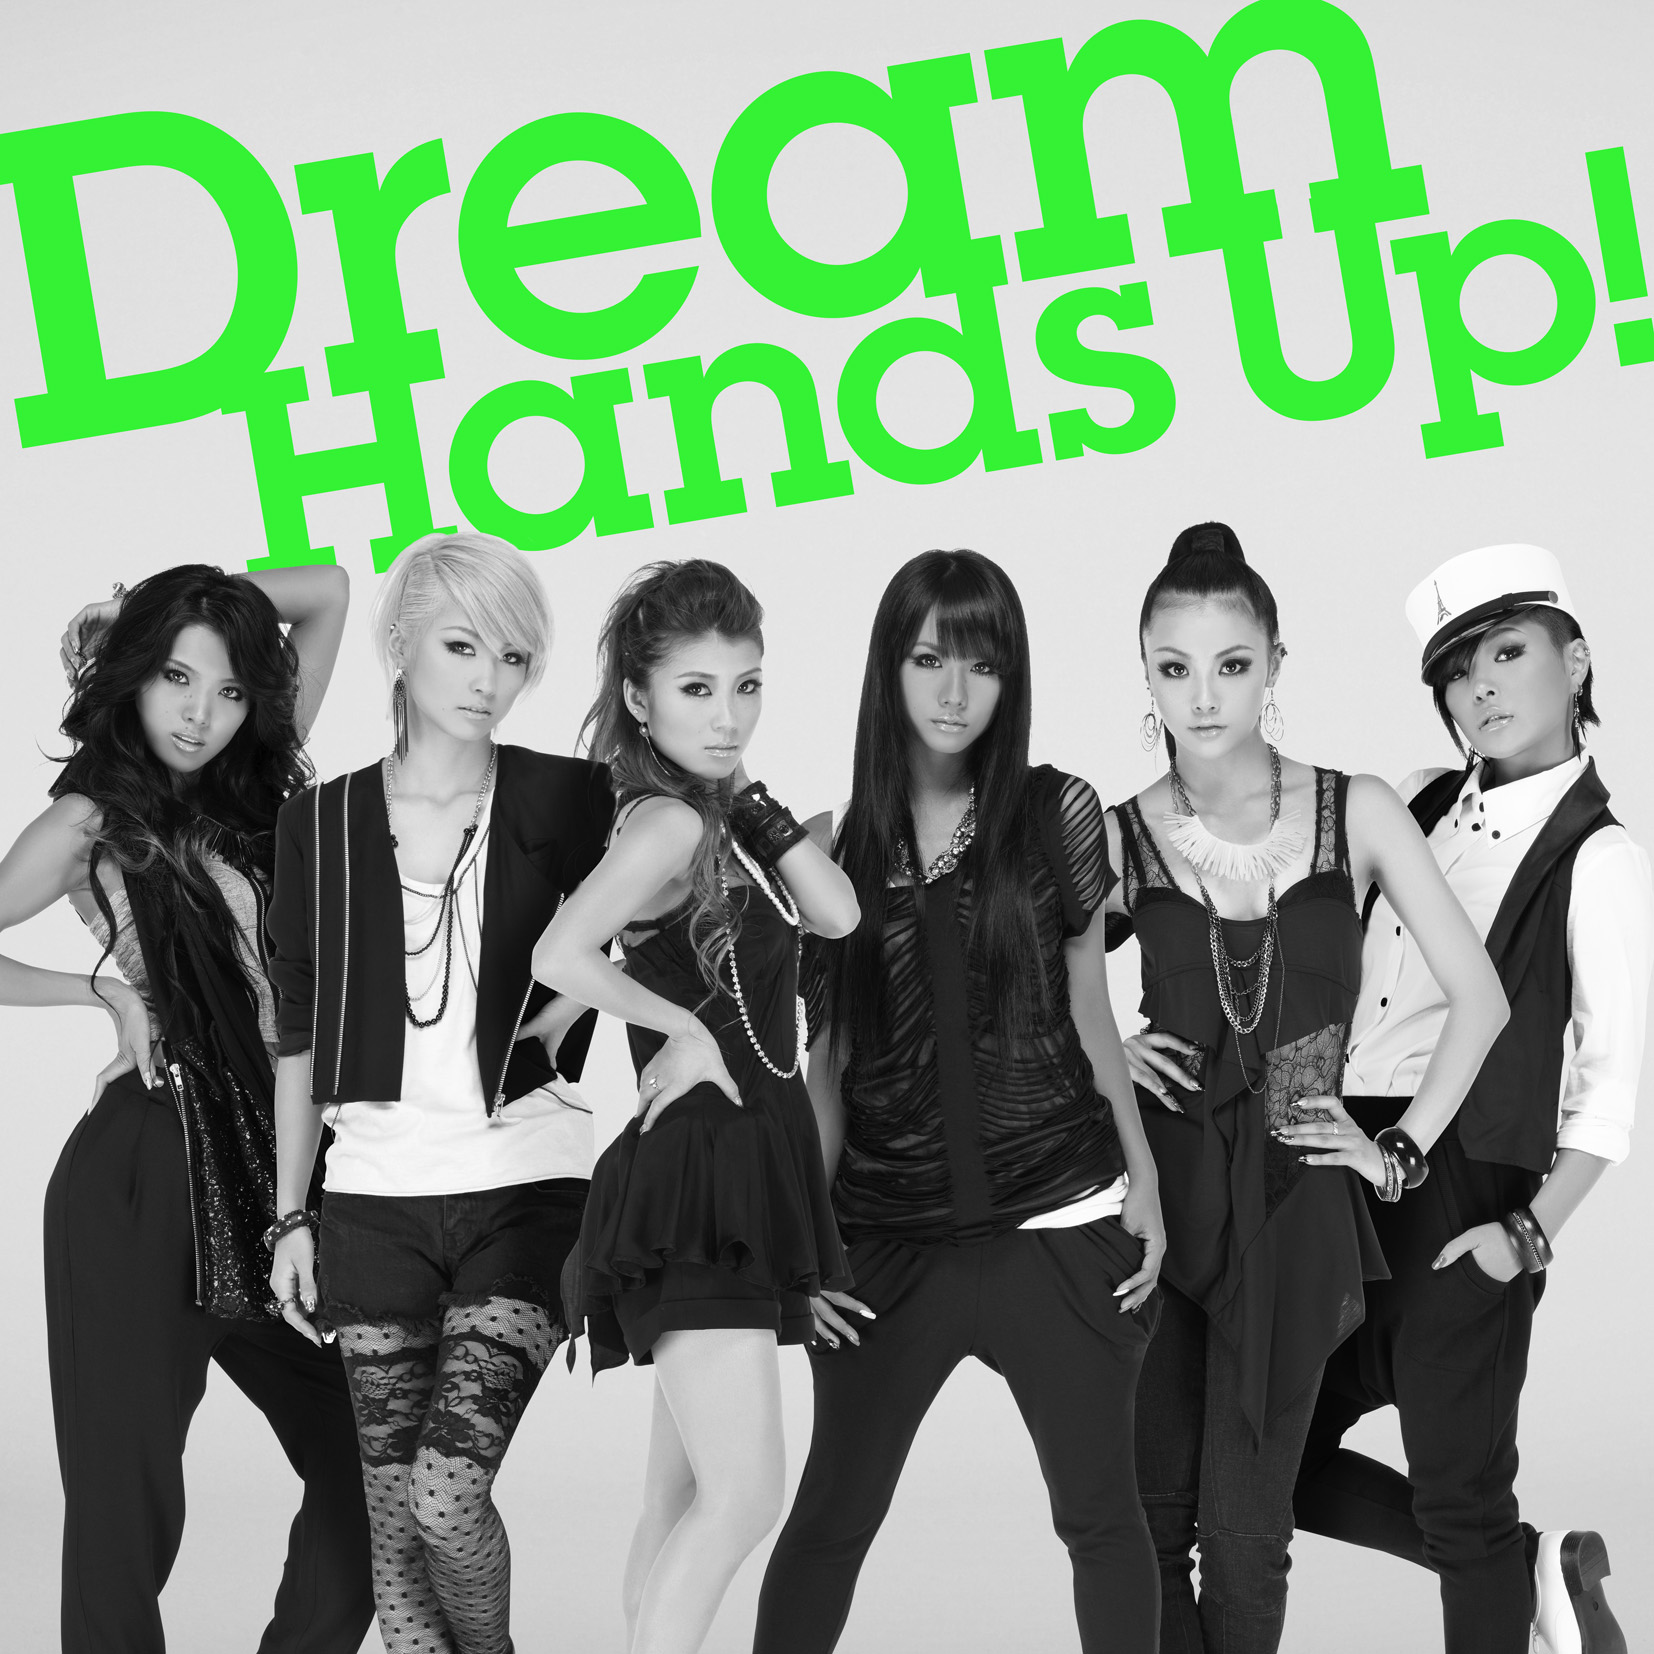 20181226.0152.05 Dream - Hands Up! cover 1.jpg